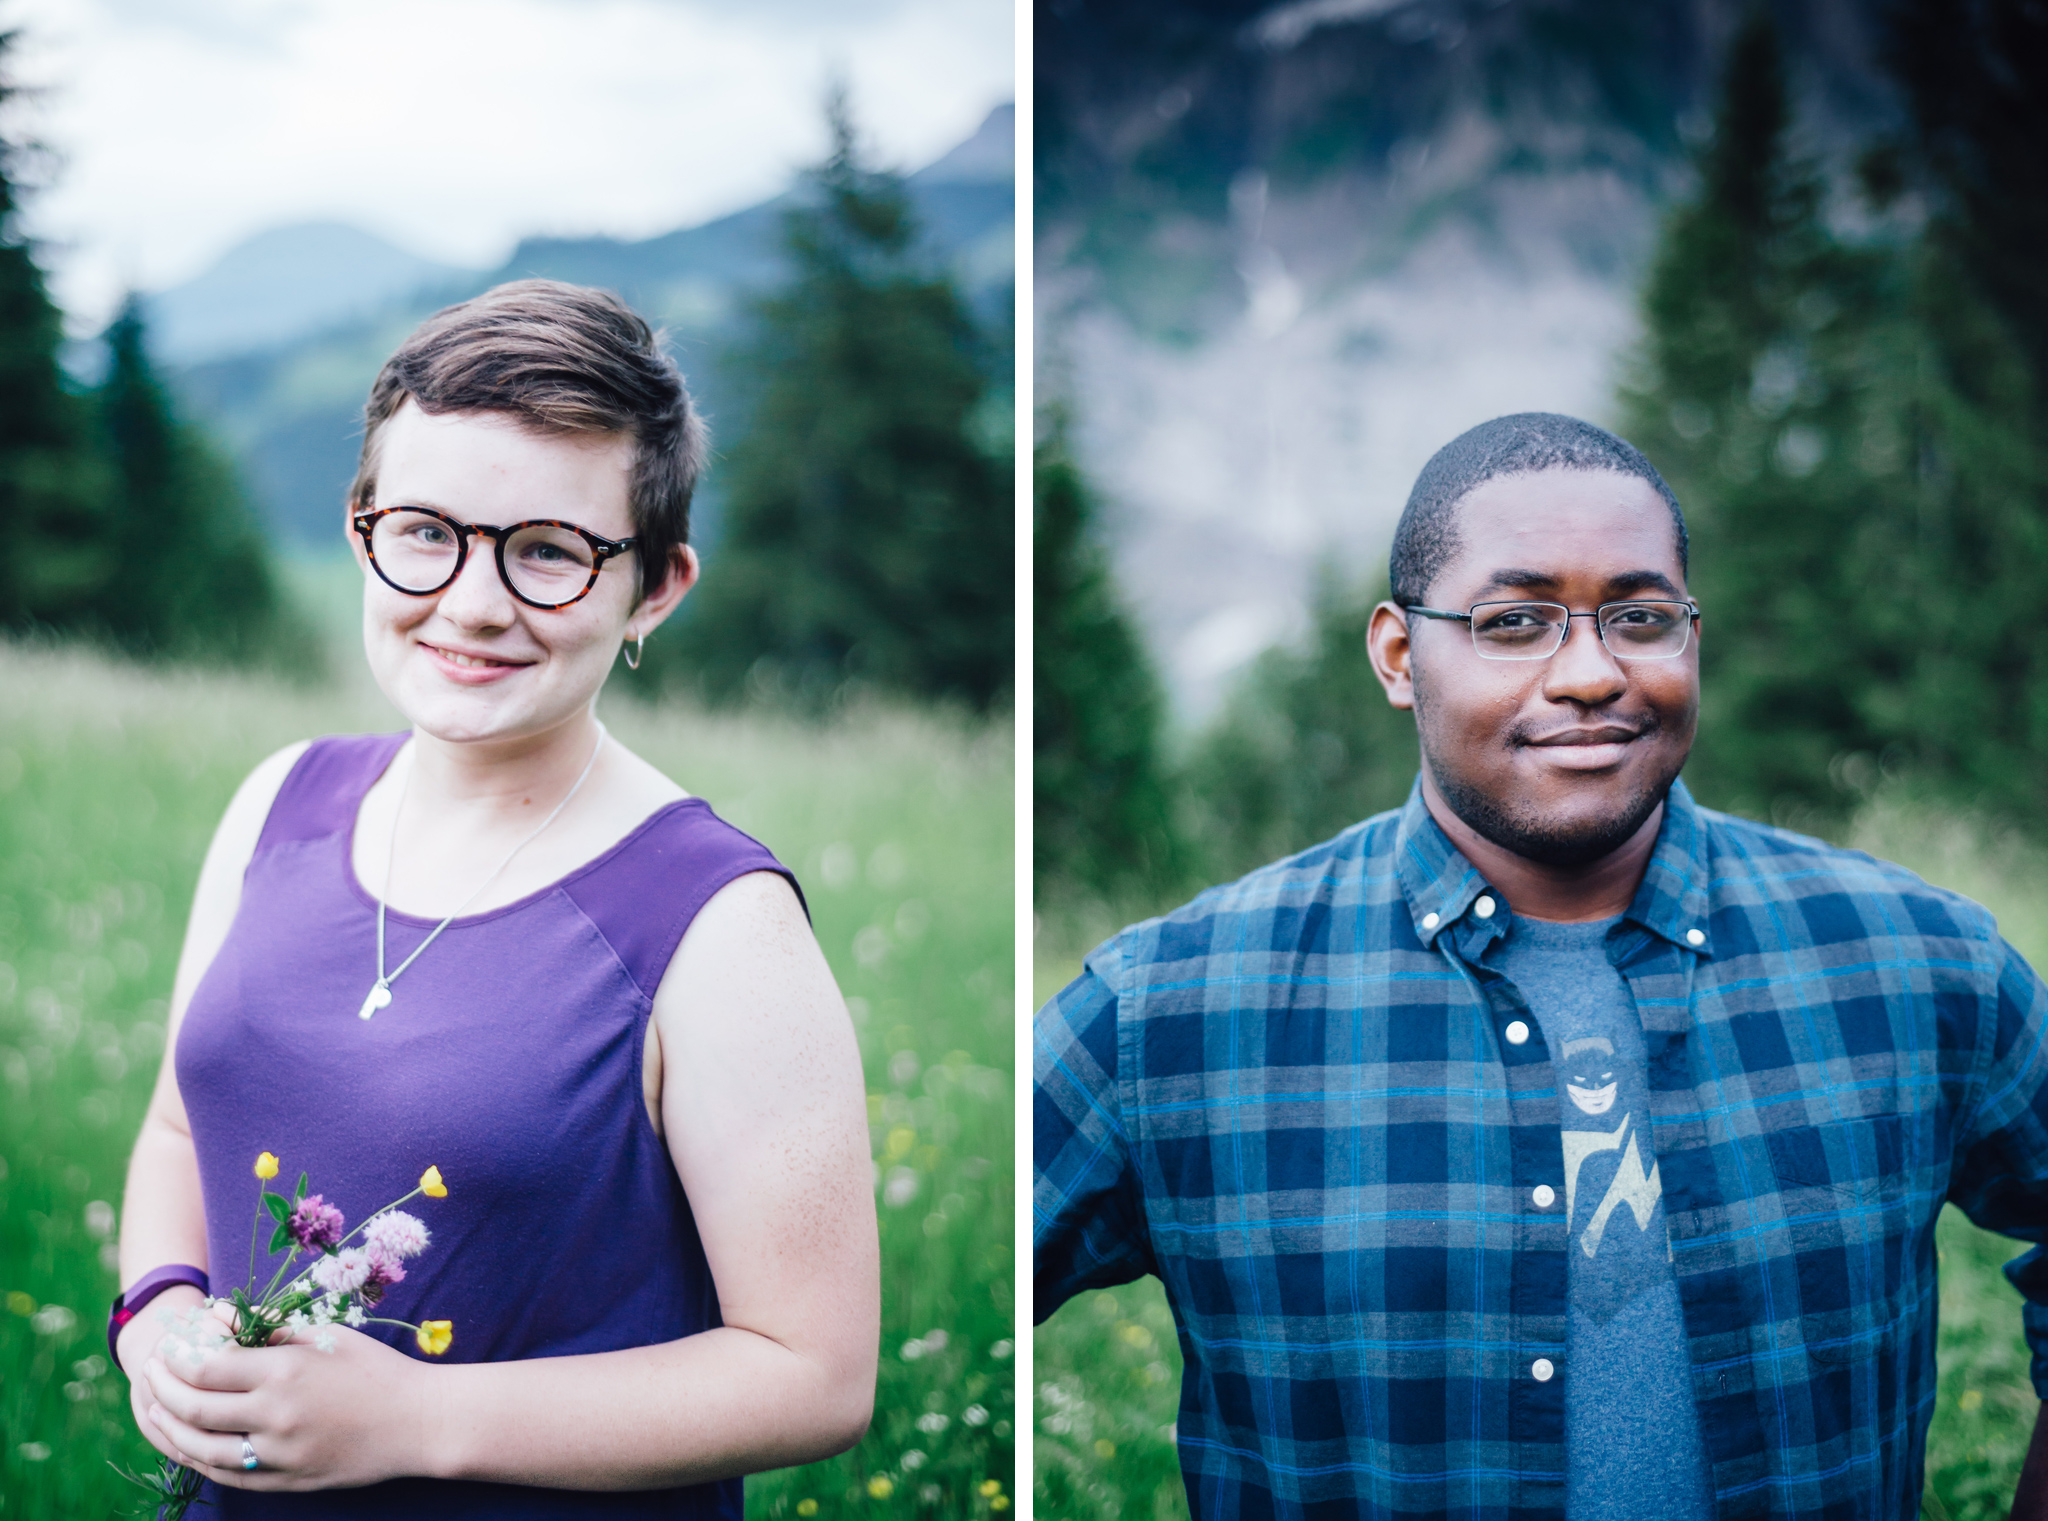 portraits in a field of flowers